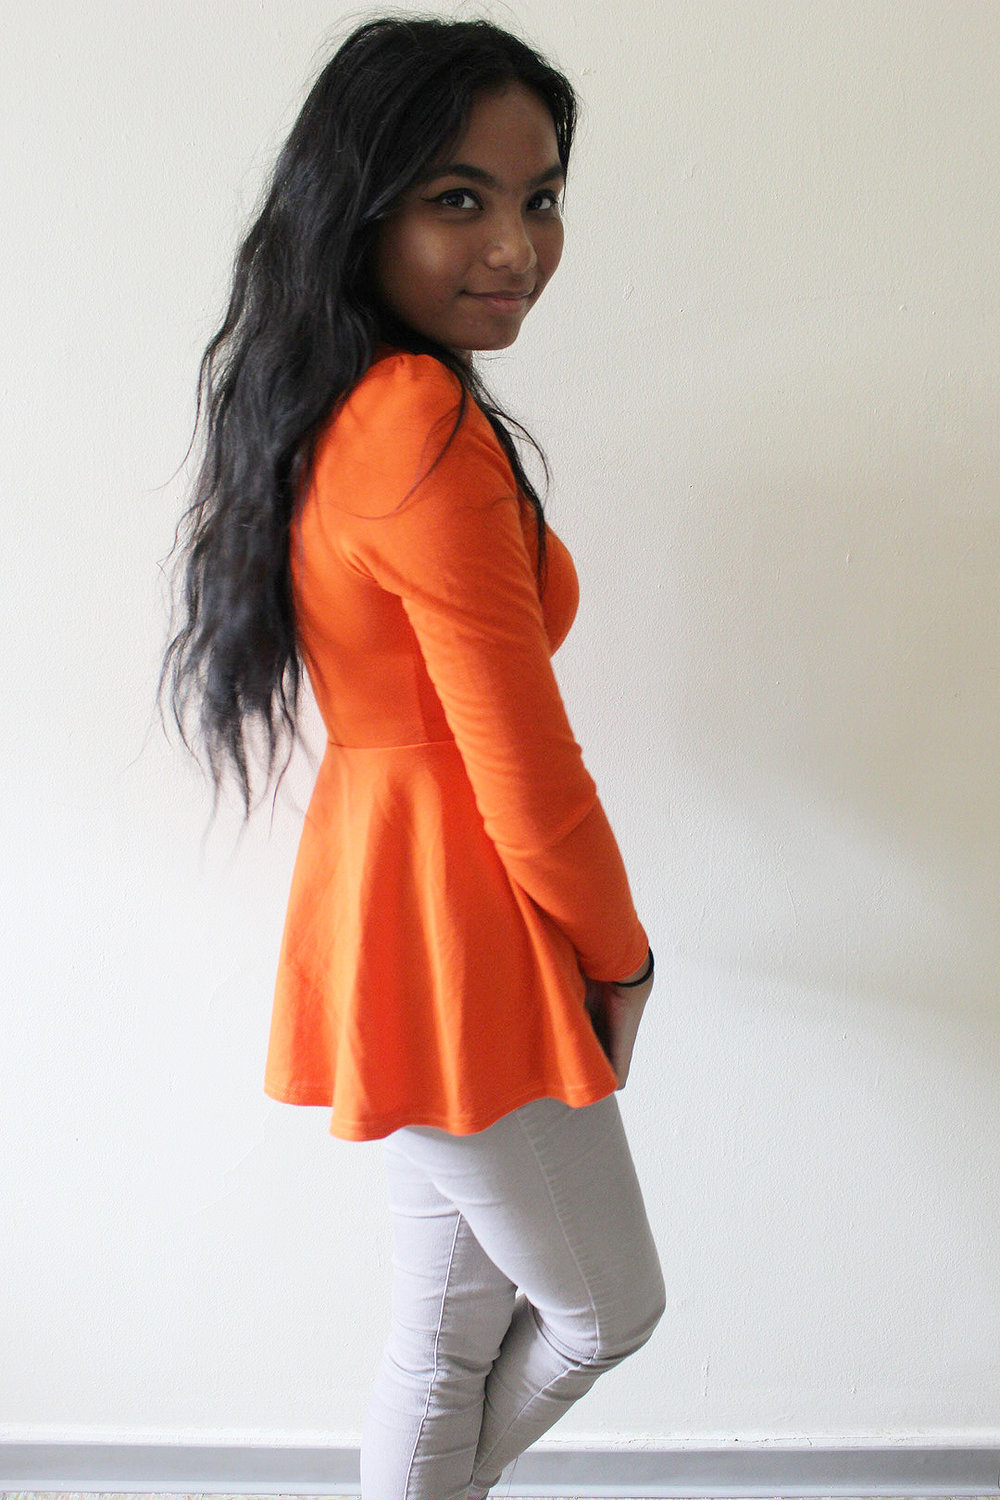 Orange-Top-Fall-Outfits-Style-Blogger-Fashionista-LINDATENCHITRAN-4-1616x1080.jpg